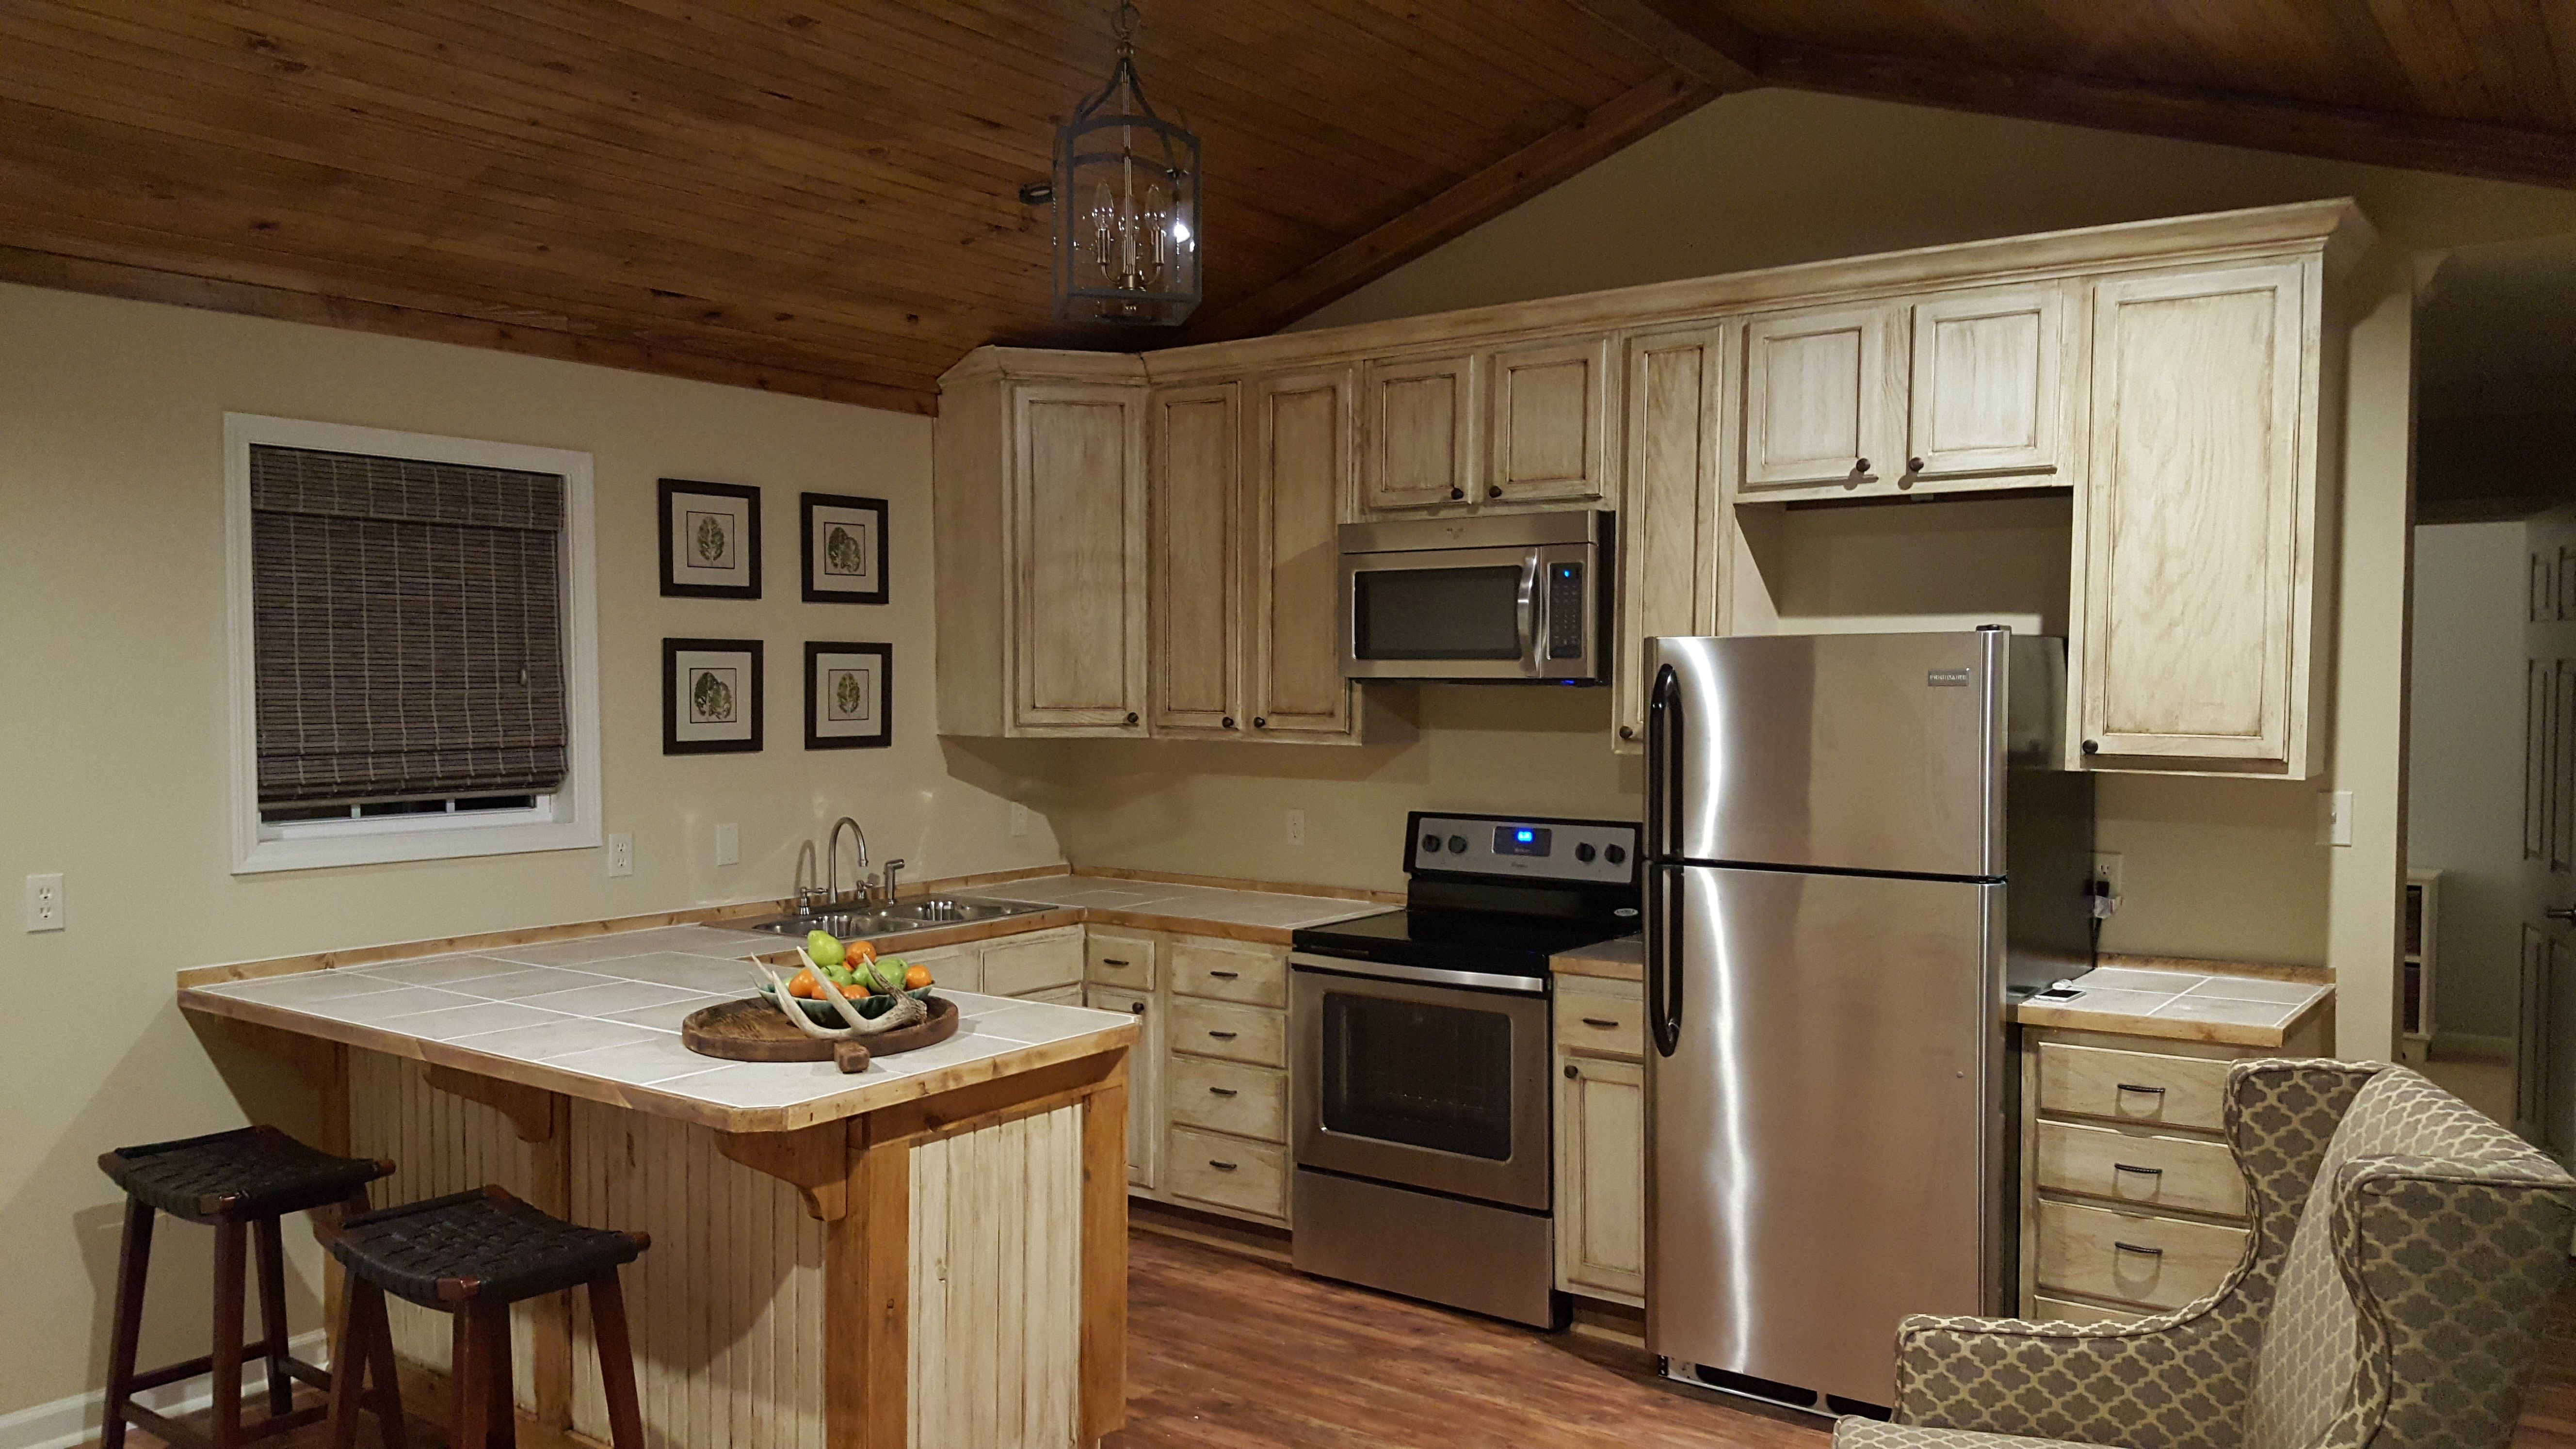 This Is Only A 512 Sq Foot Small 1 Bedroom Home That Offers A Spacious Kitchen And Living Room With Vaulted Ceilings Spacious Kitchens Kitchen Home